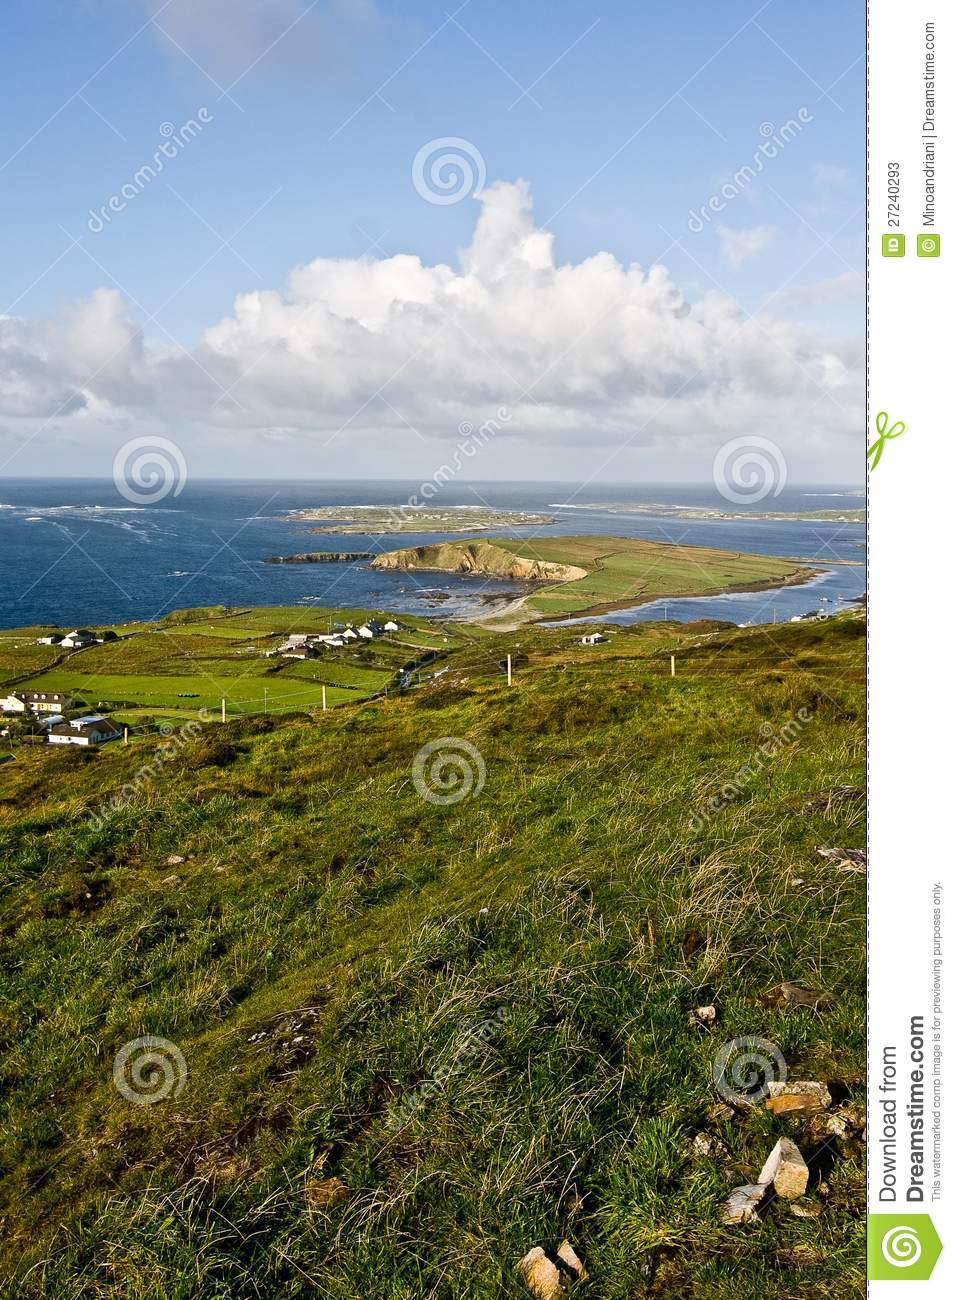 Landscape in dingle peninsula stock photos image 27240293 for Garden design kerry